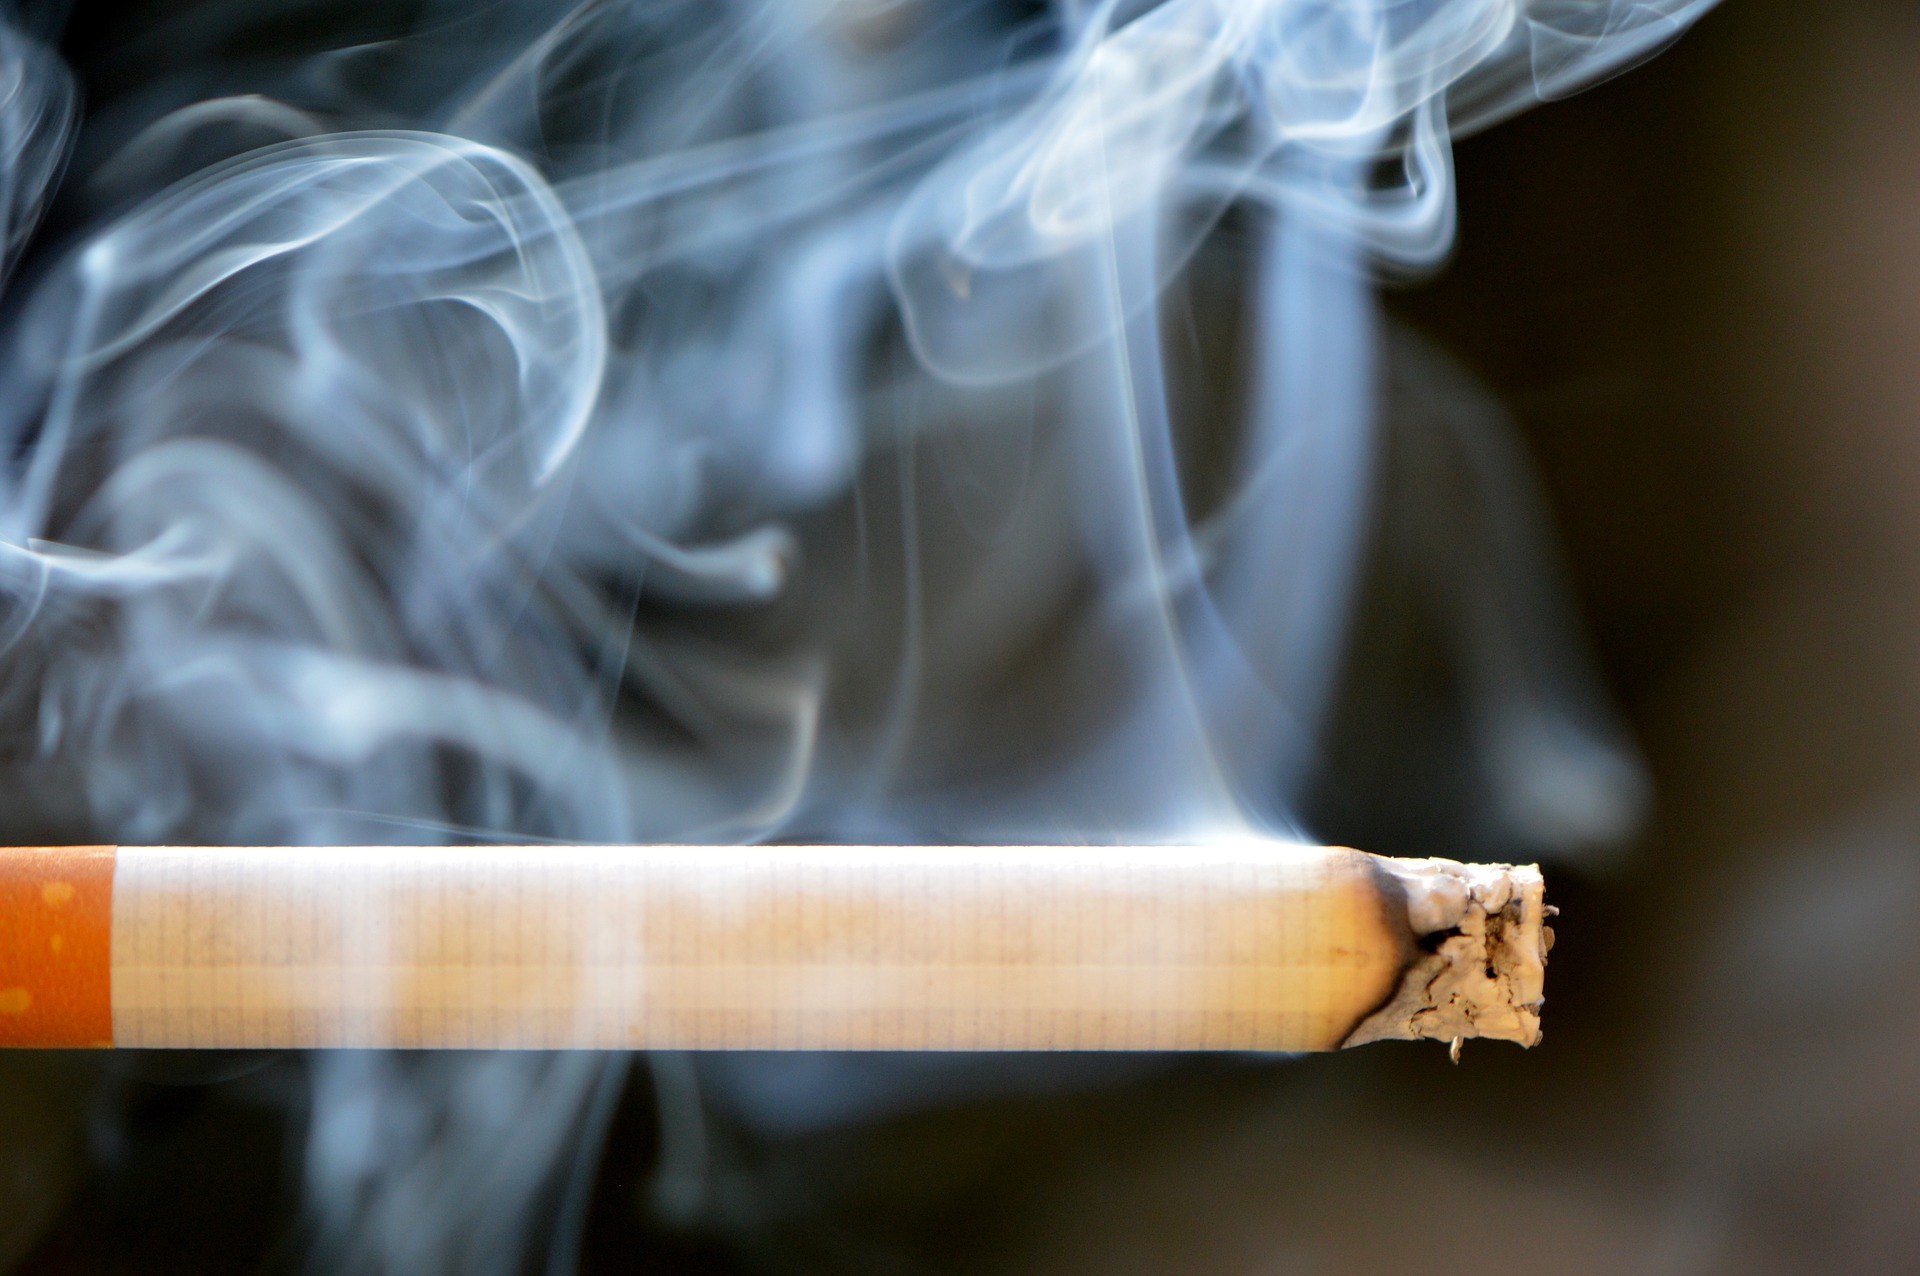 Diseases that Can Make You Smell Cigarette Smoke